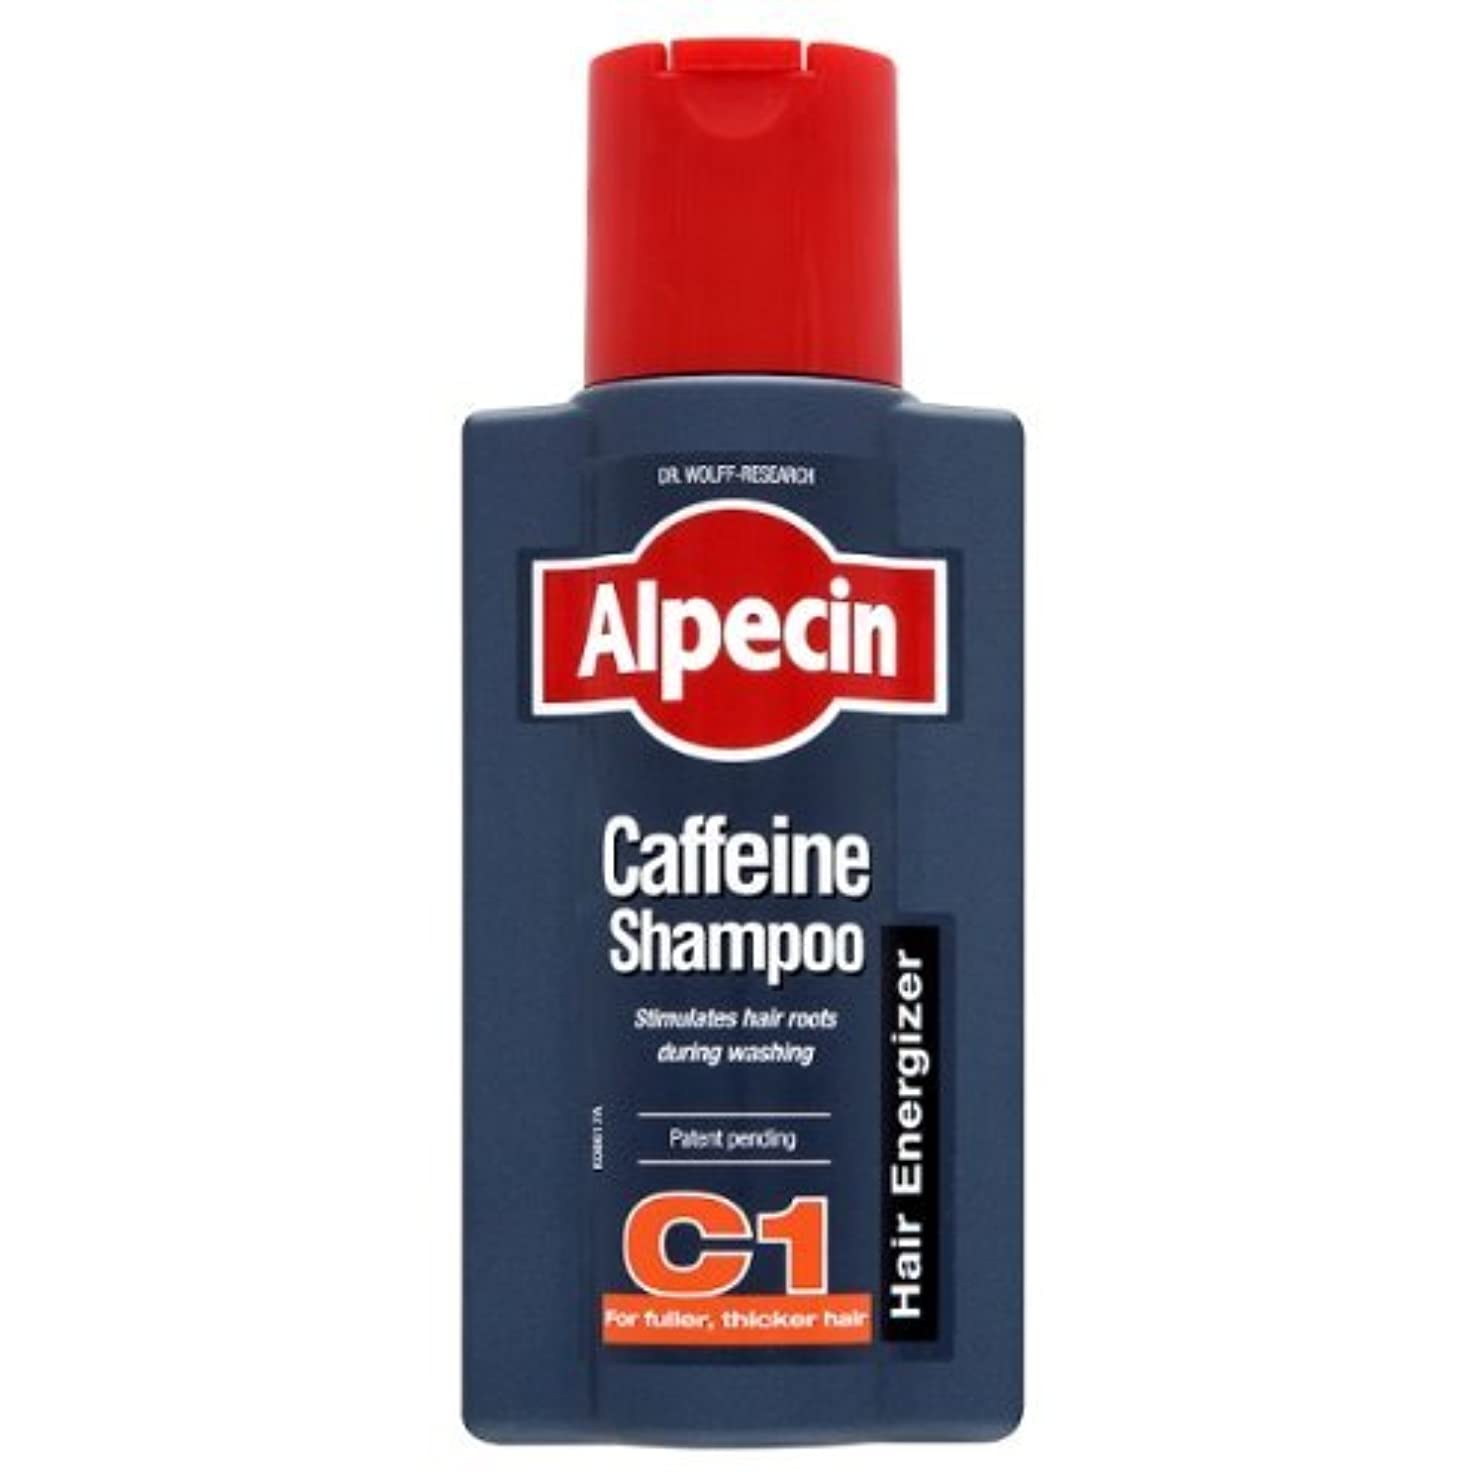 Alpecin Caffeine Hair Energizer Shampoo 250ml - Pack of 3 by ALPECIN [並行輸入品]